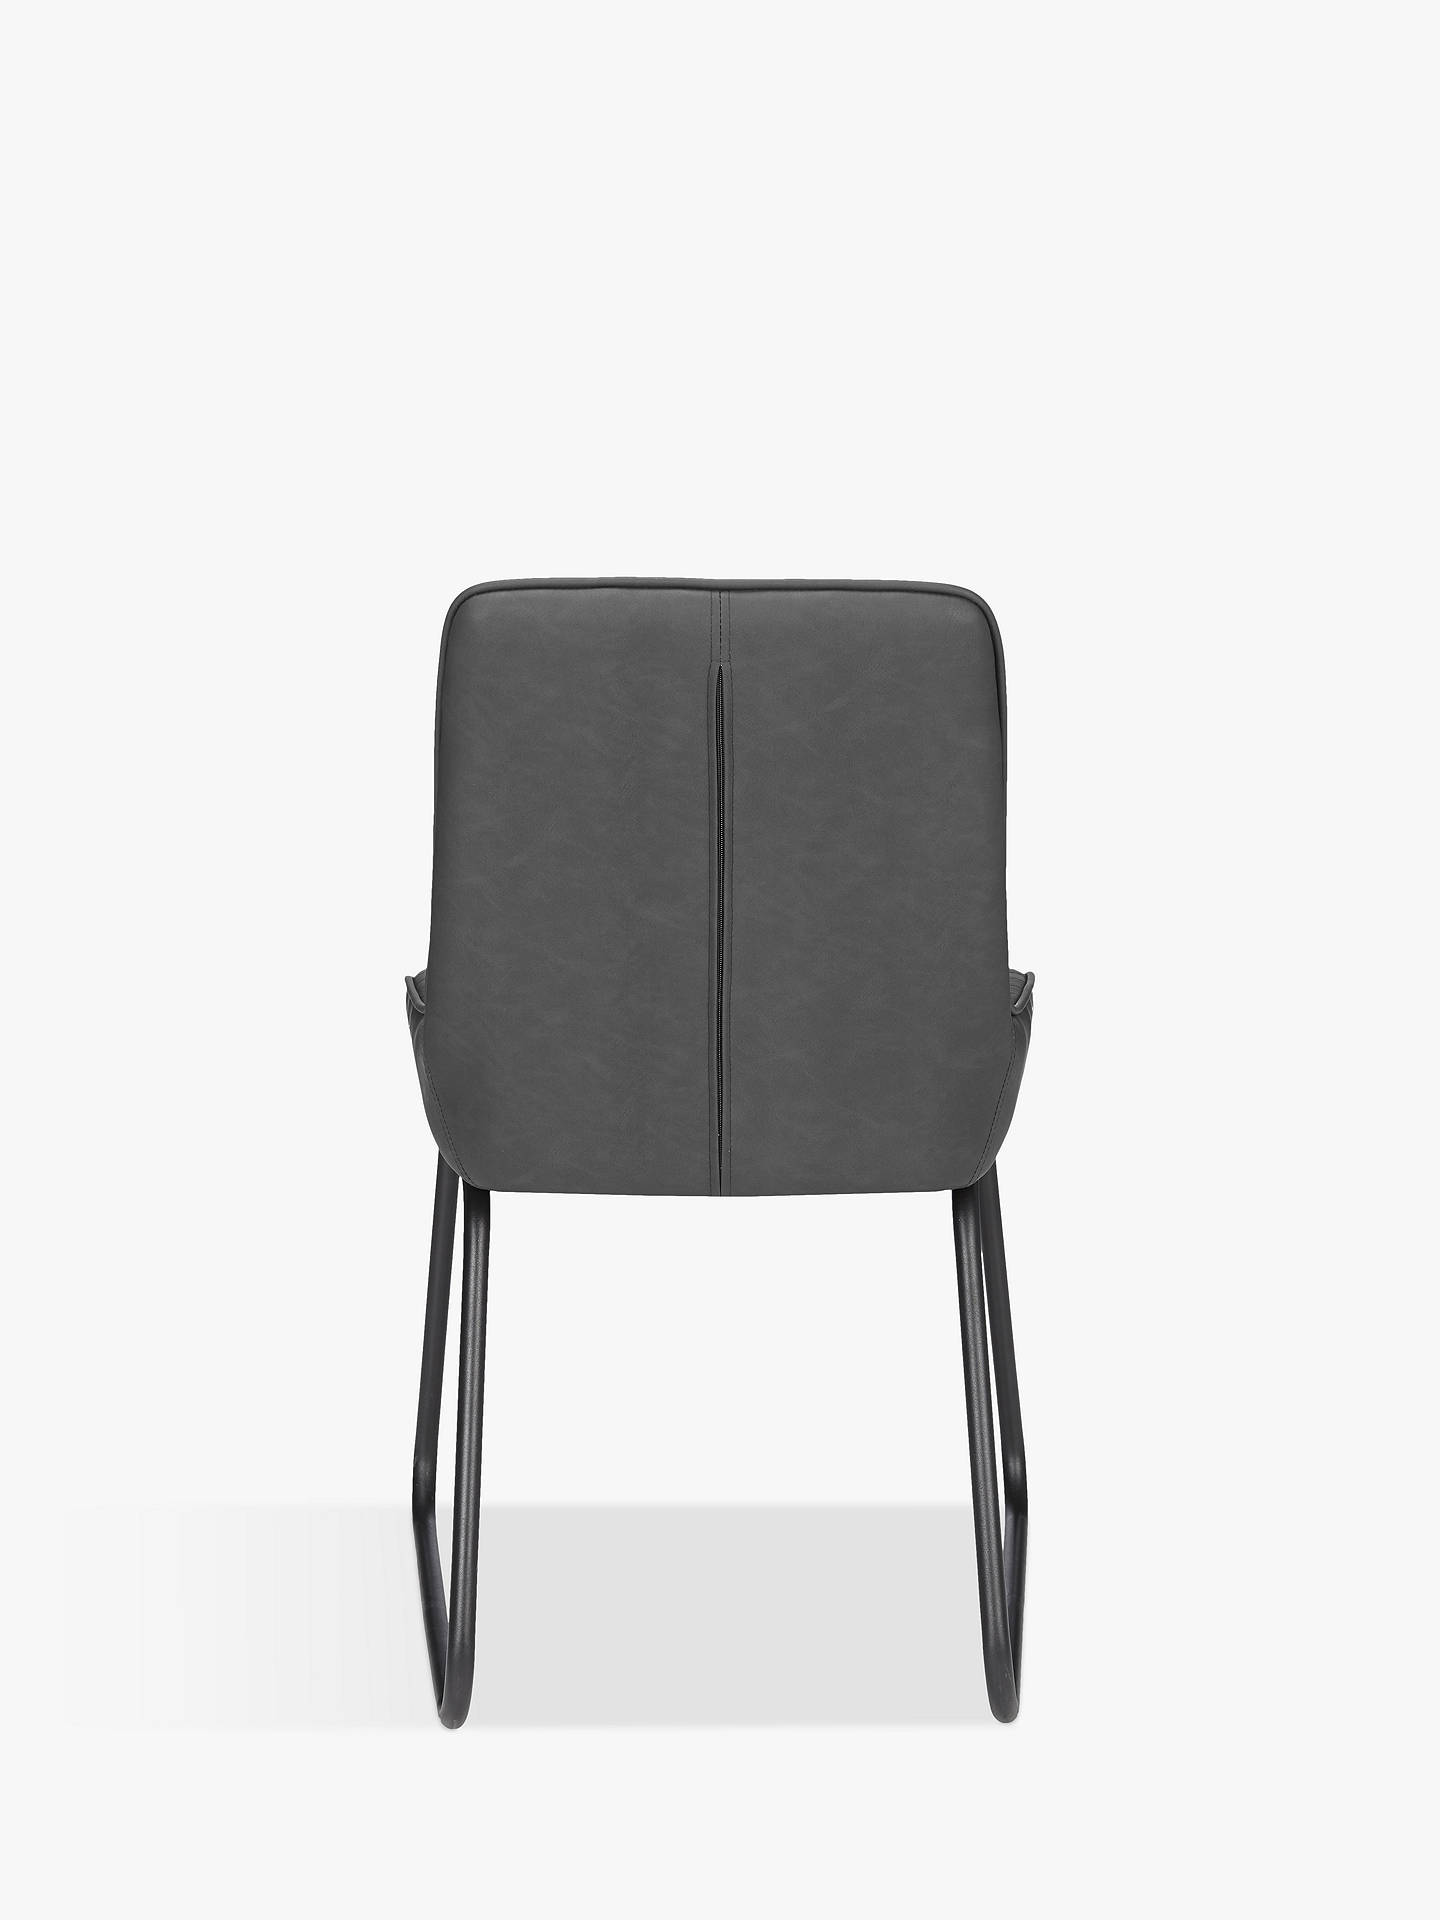 John Lewis & Partners Brooks Side Dining Chairs, Set of 2, Charcoal